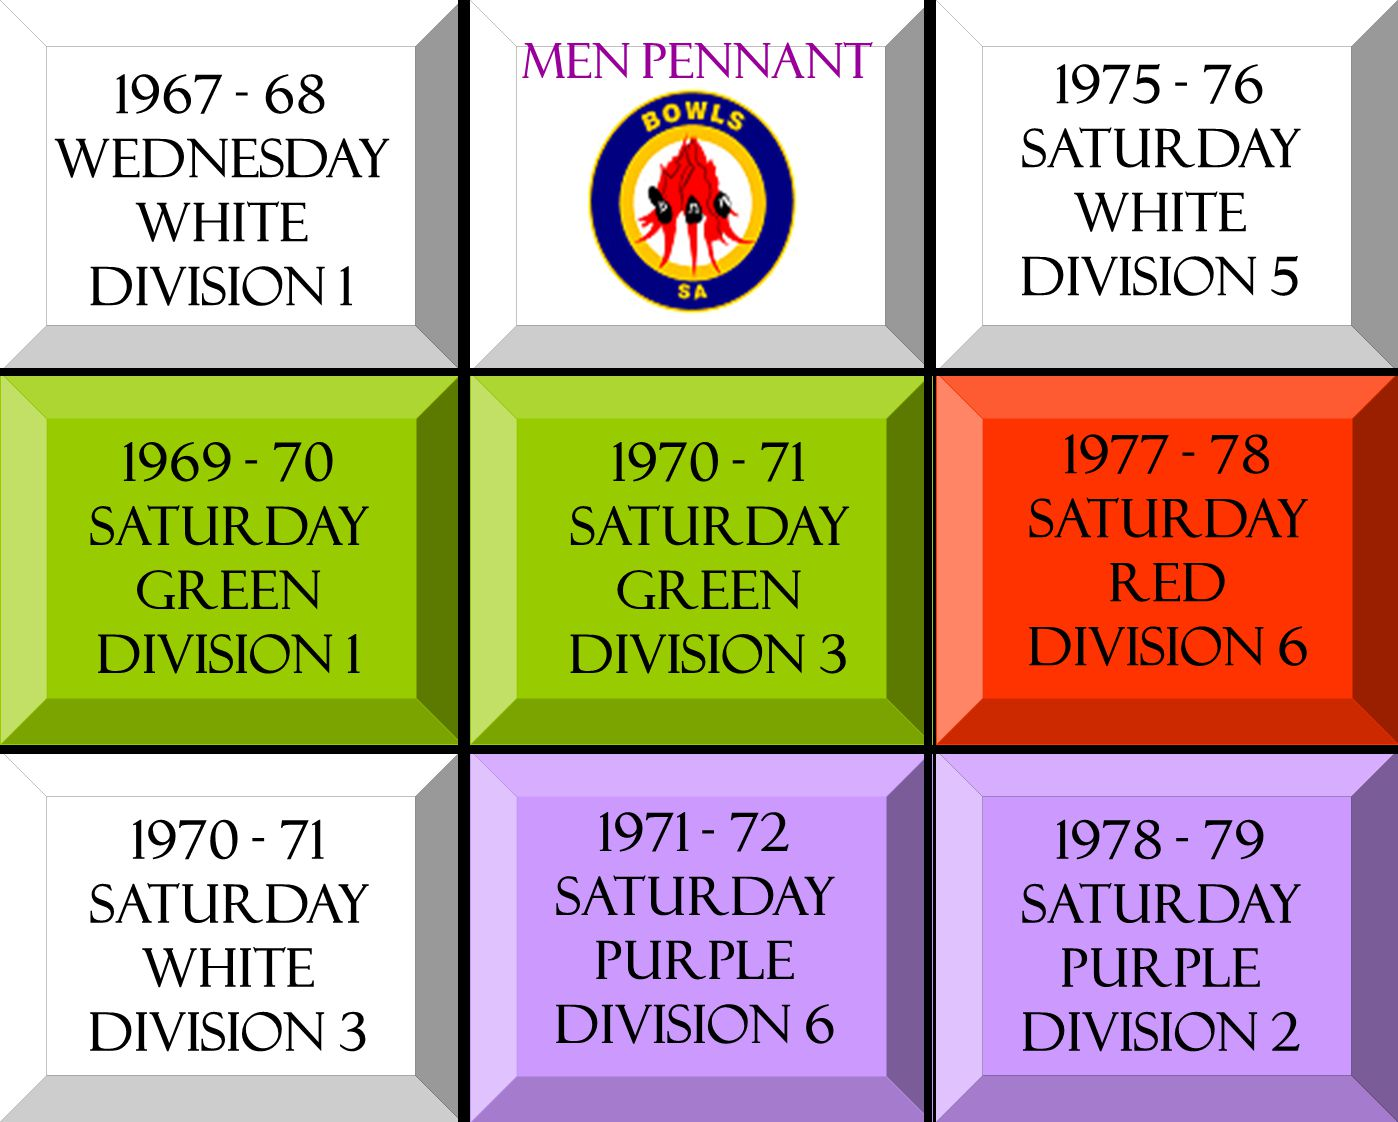 1967 - 68 WEDNESDAY WHITE DIVISION 1 1969 - 70 SATURDAY GREEN DIVISION 1 1970 - 71 SATURDAY WHITE DIVISION 3 1970 - 71 SATURDAY GREEN DIVISION 3 1971 - 72 SATURDAY PURPLE DIVISION 6 1975 - 76 SATURDAY WHITE DIVISION 5 1977 - 78 SATURDAY RED DIVISION 6 1978 - 79 SATURDAY PURPLE DIVISION 2 Men pennant